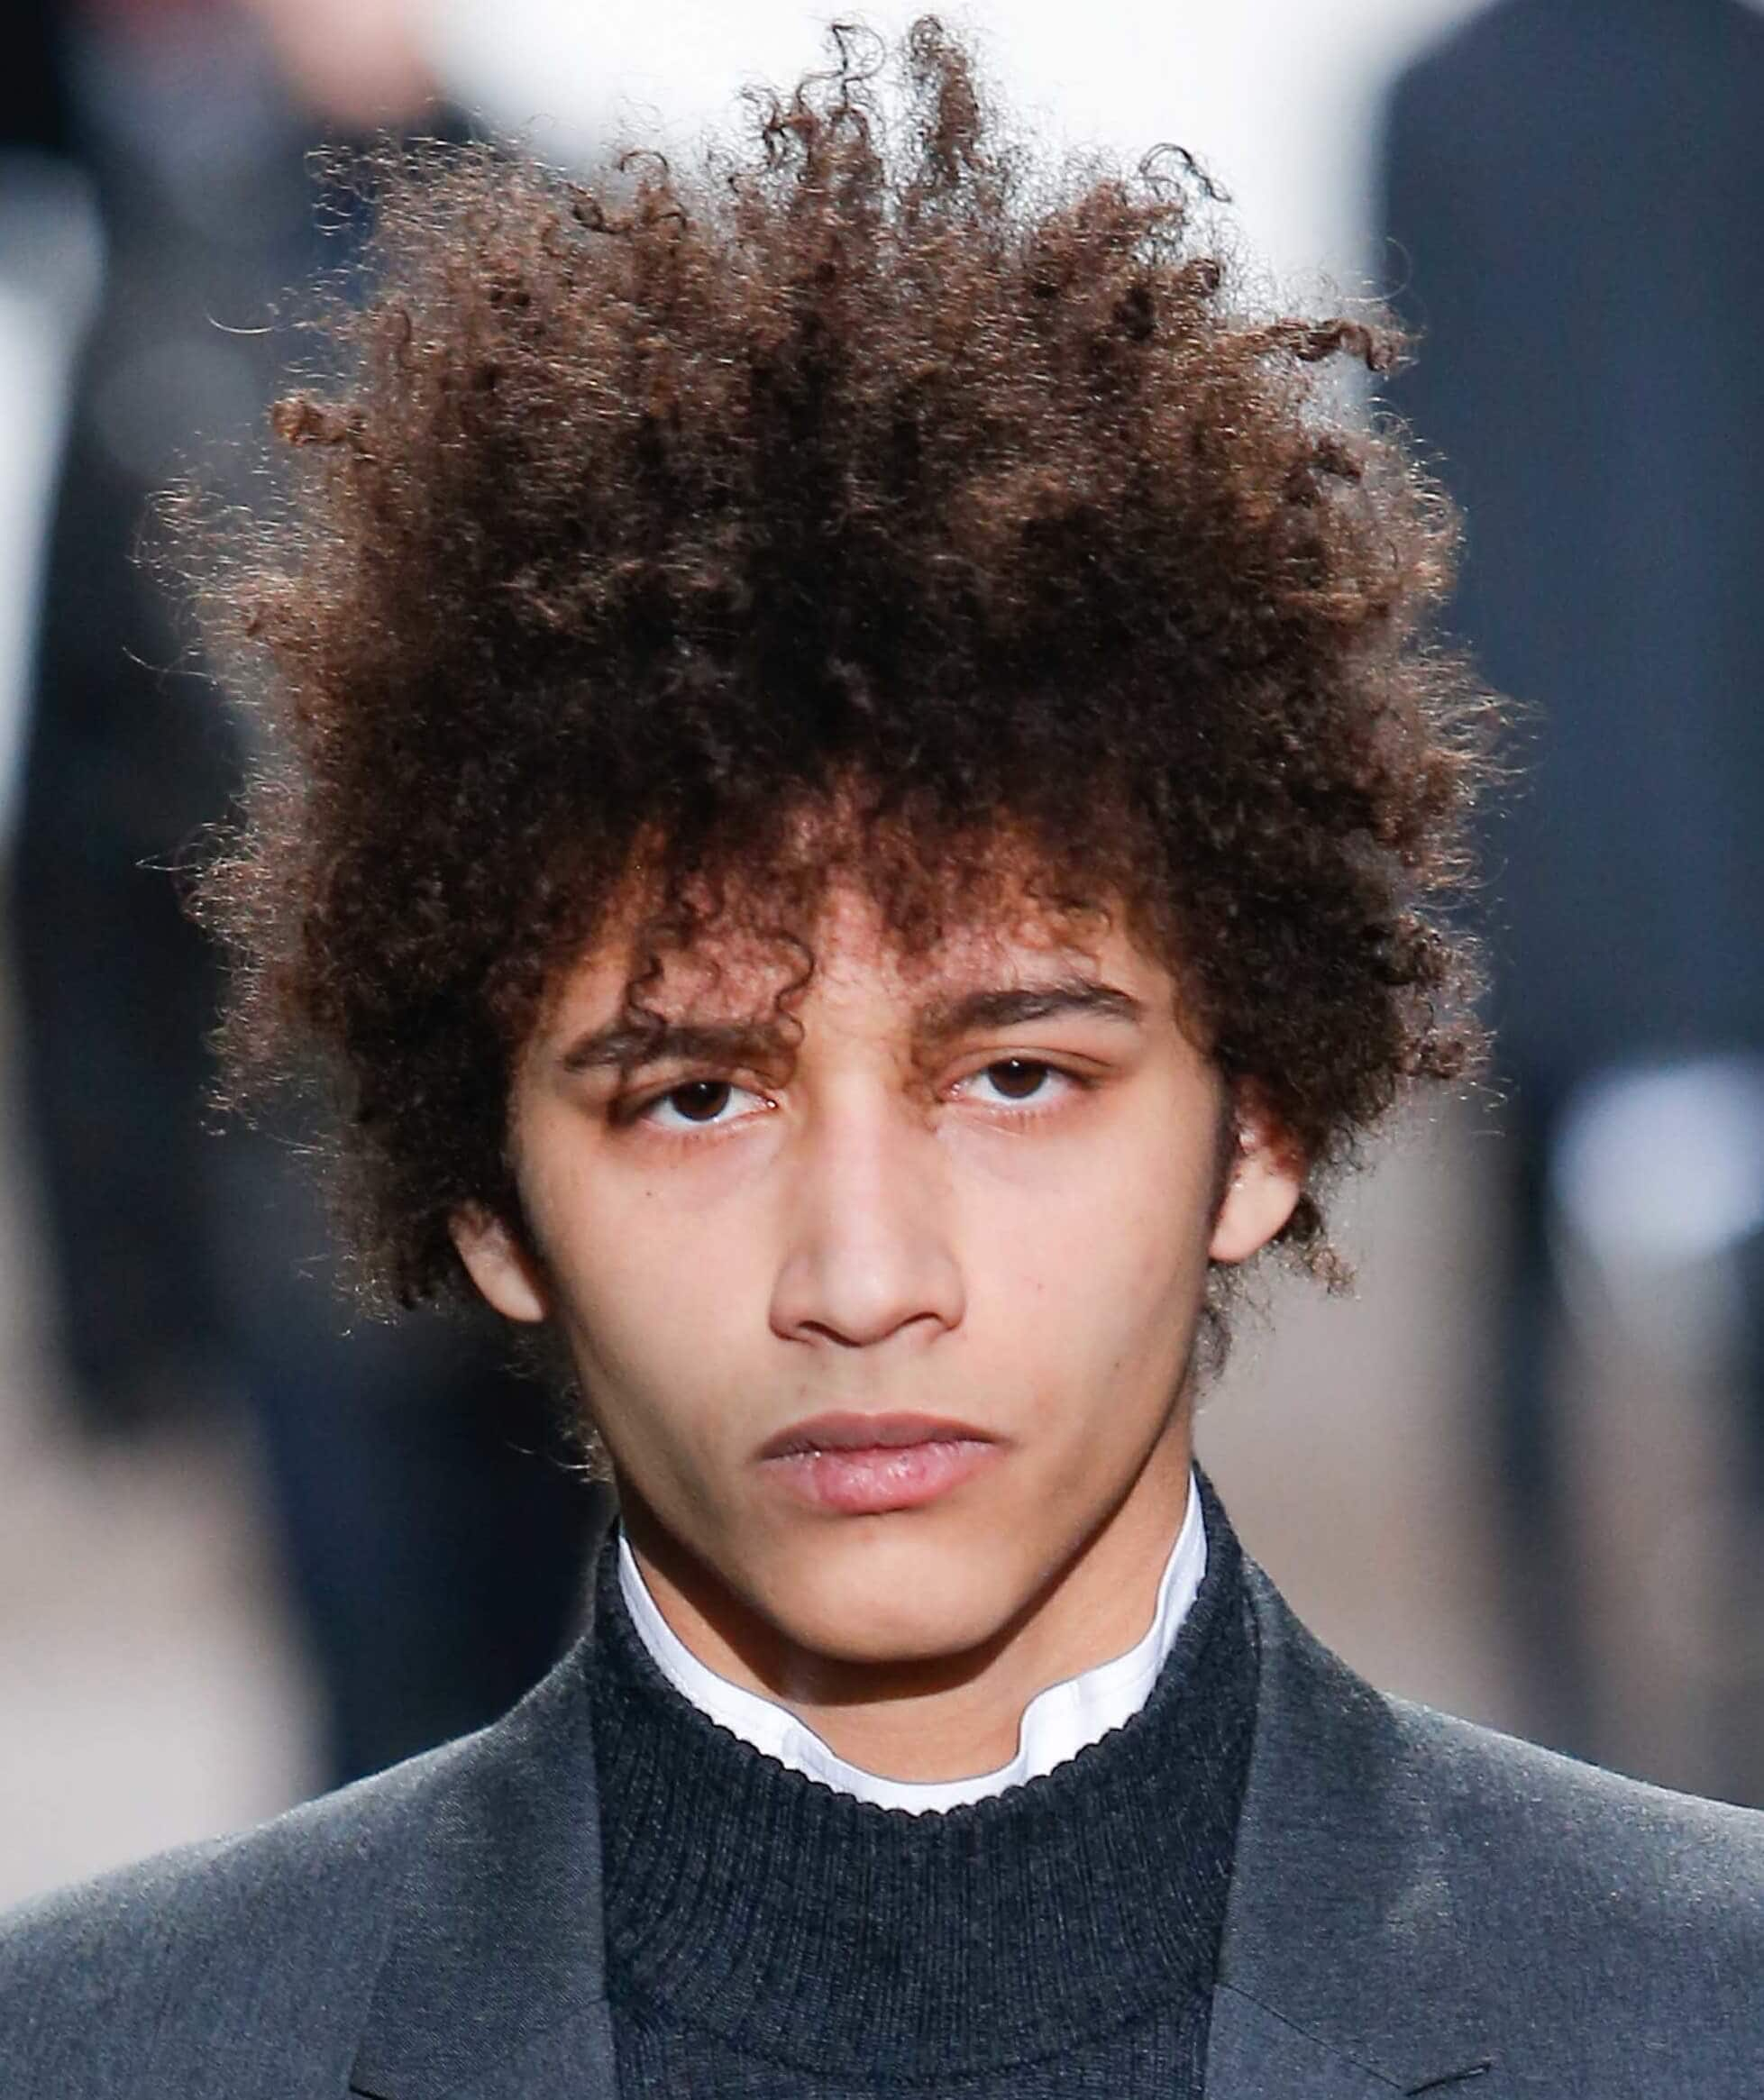 Curly hair men, our fave styles \u0026 how to work them for your